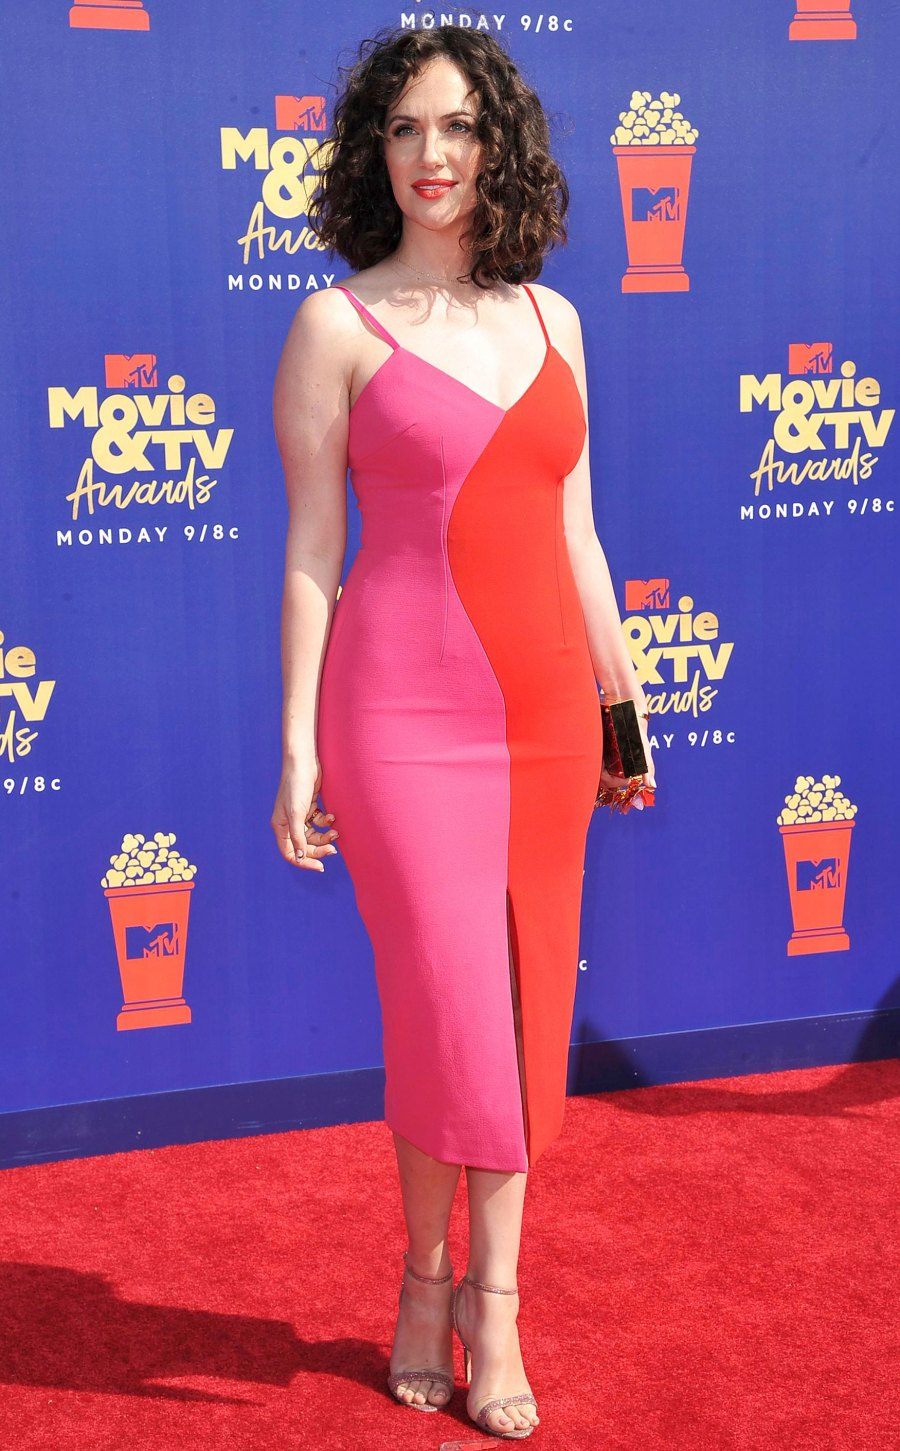 Celebs Wearing Red and Pink - Katie Siegel